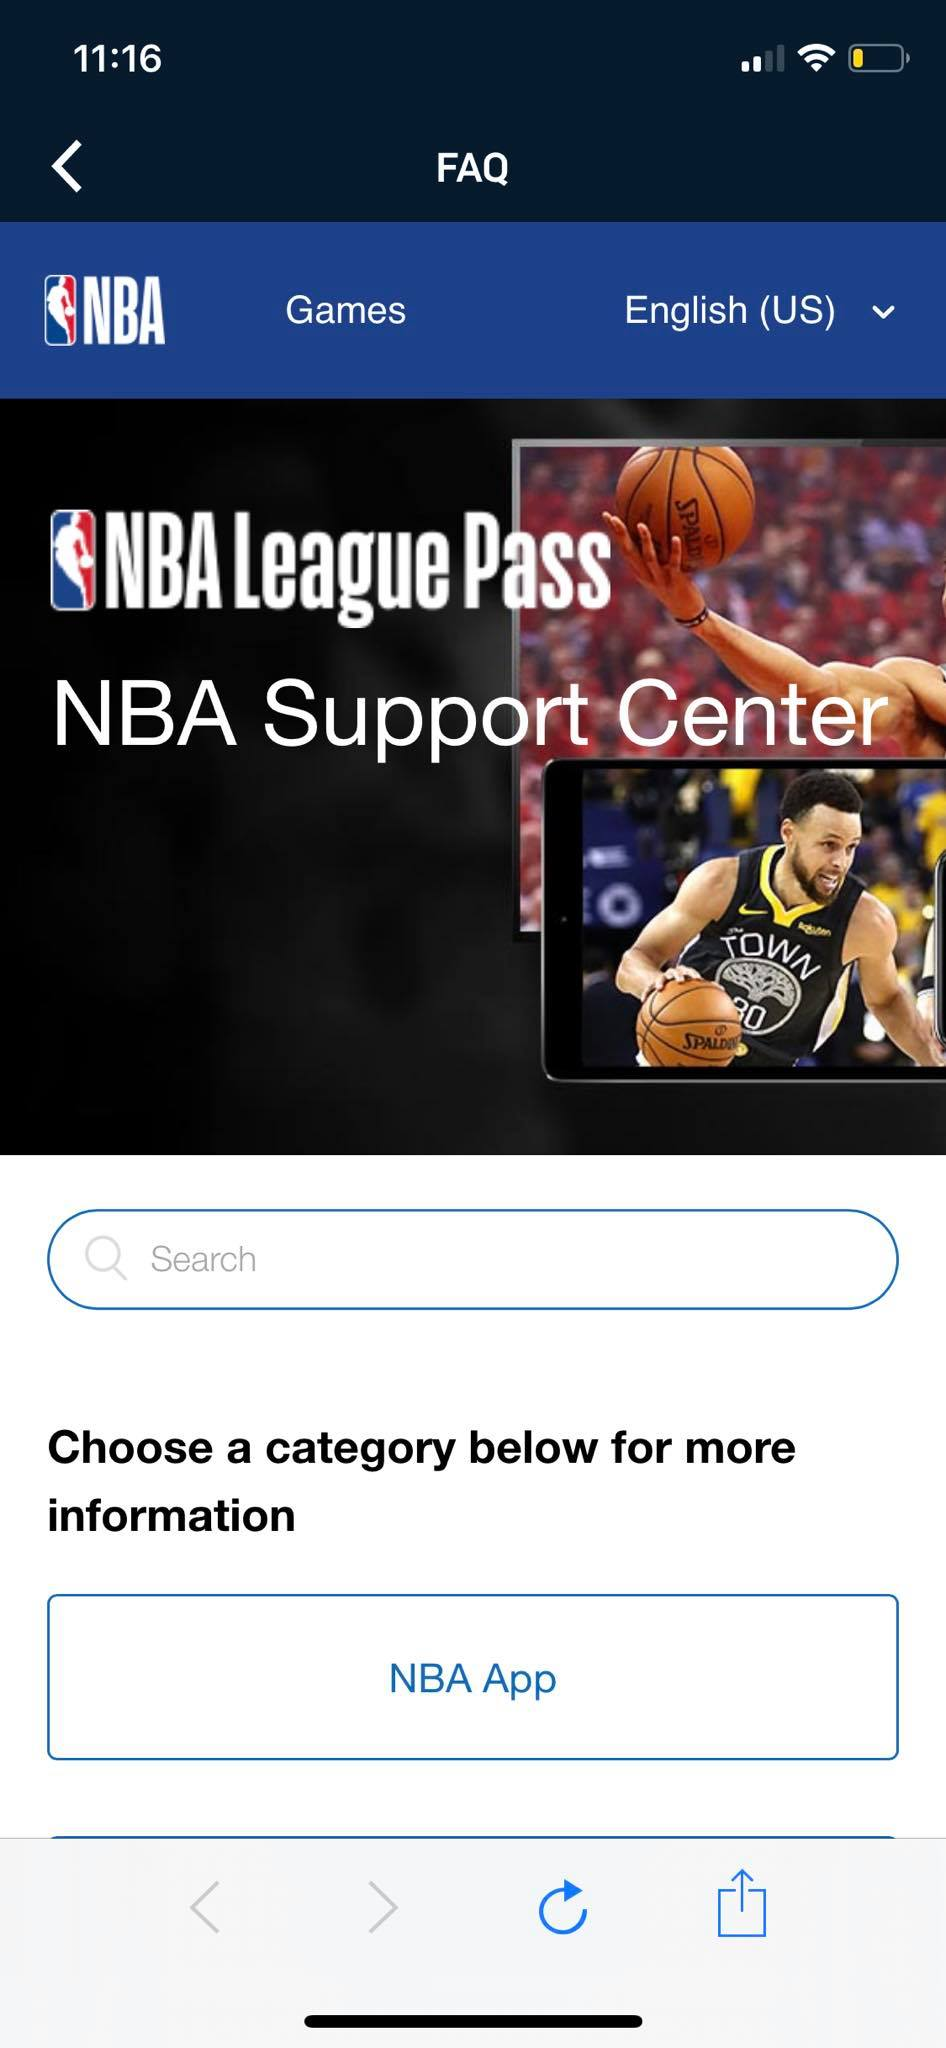 FAQ on iOS by NBA from UIGarage